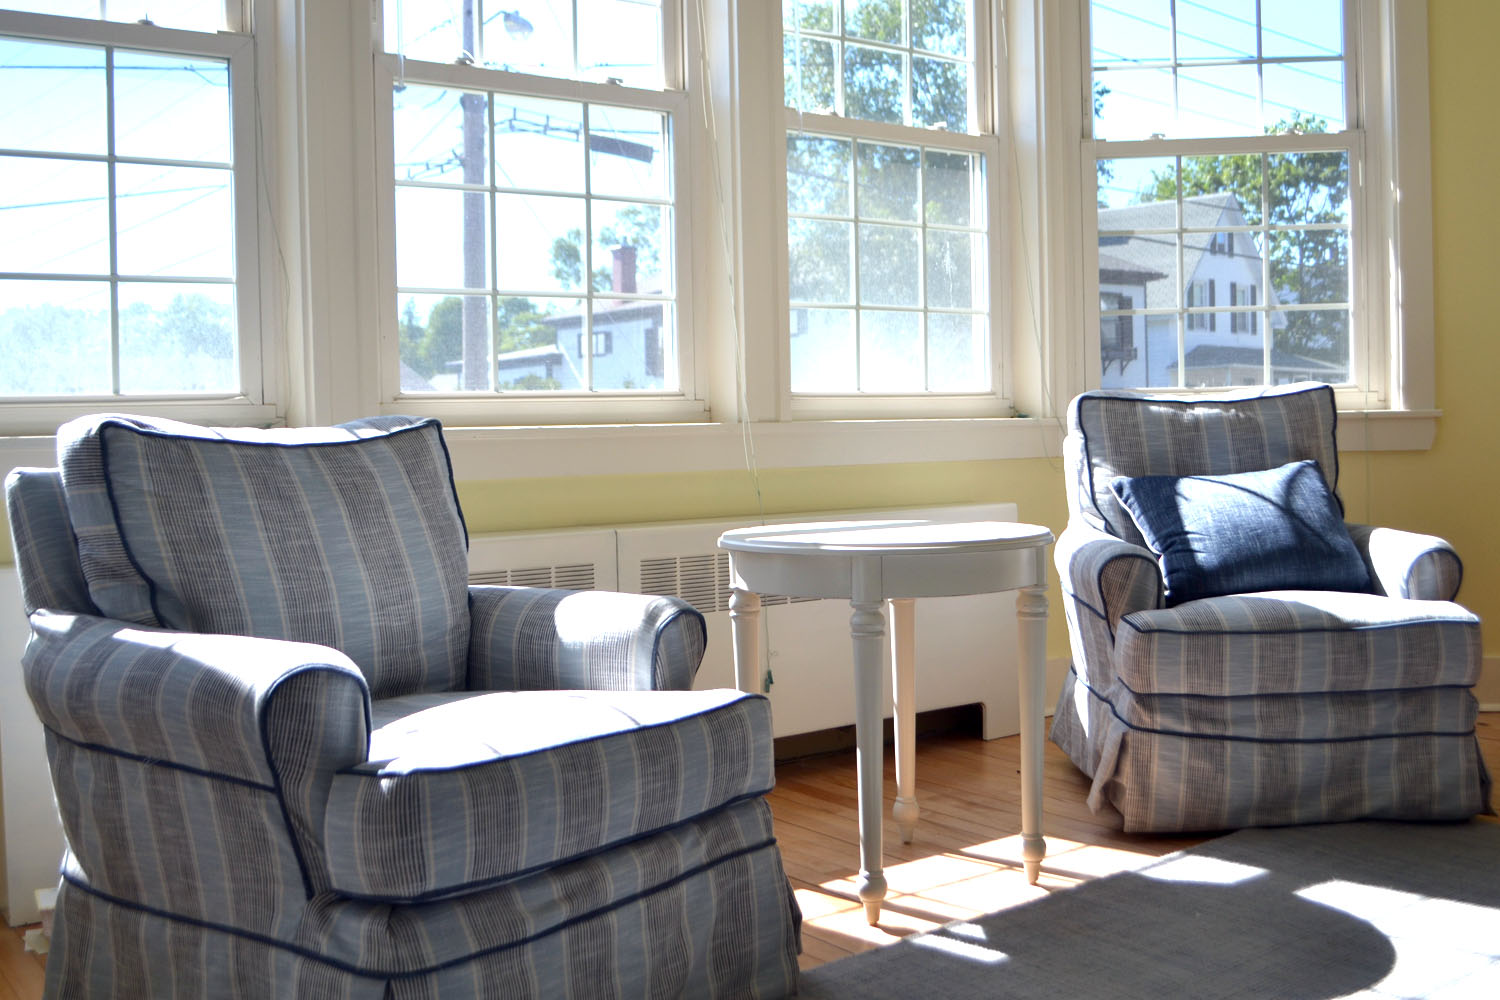 """One of the more noticeable projects nearing completion at The Neighborhood House is the revamped """"Parady Room,"""" which serves as a spot for guests to sit and relax as well as area groups to hold informal meetings and small gatherings."""